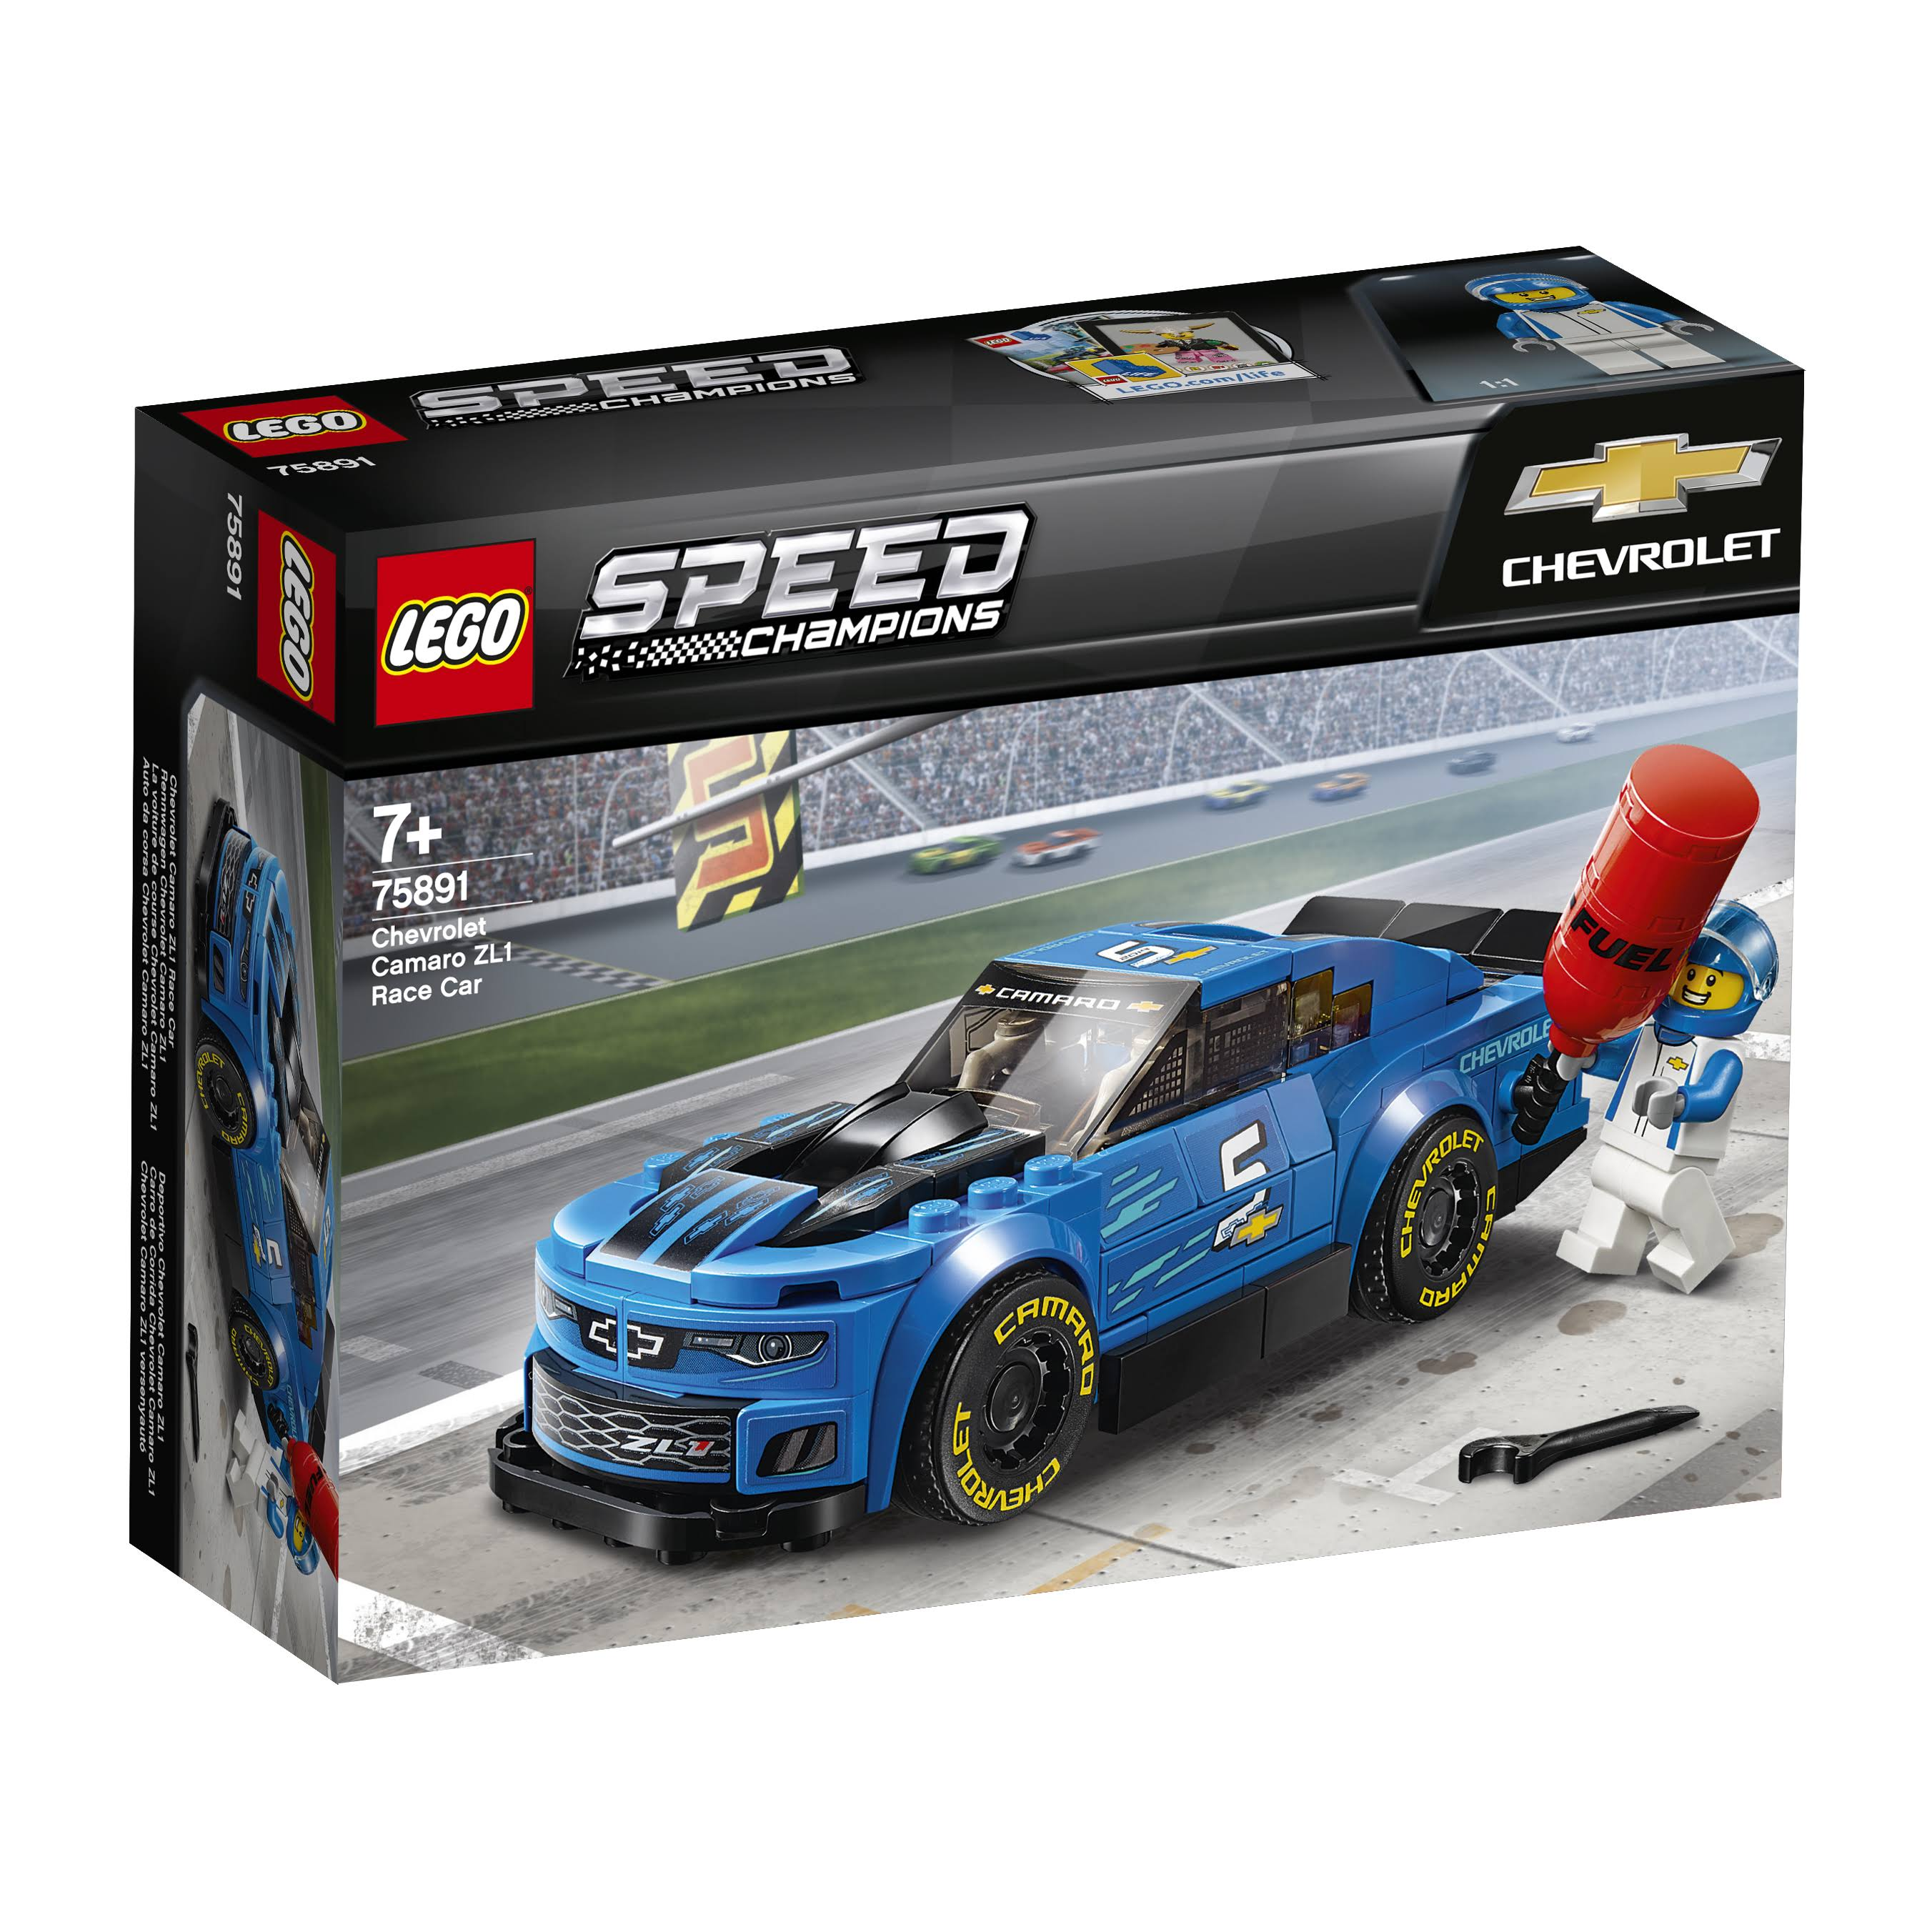 Lego Speed Champions Chevrolet Camaro ZL1 Race Car Building Toy